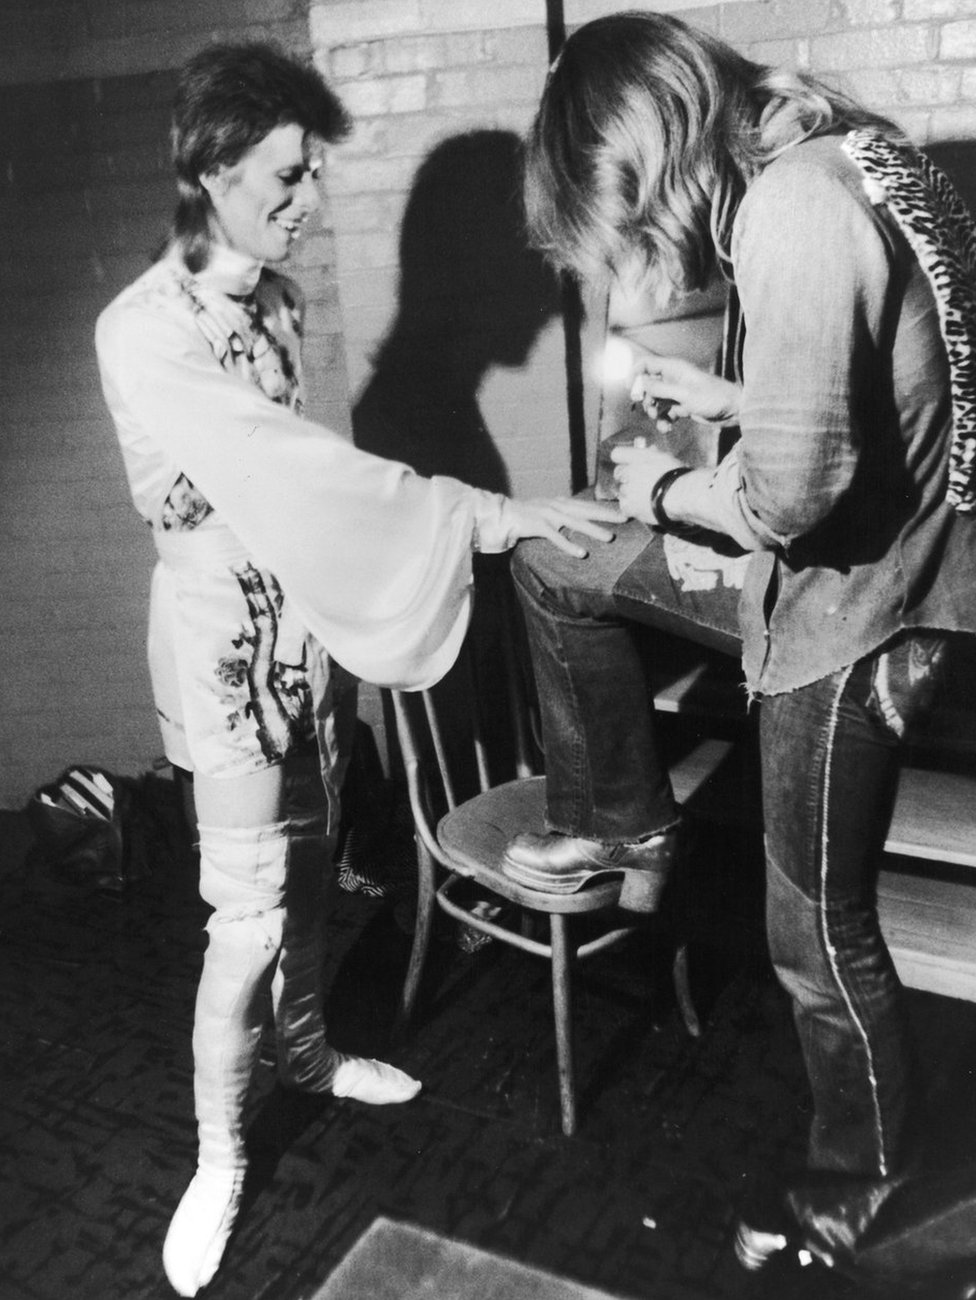 Make-up artist Pierre La Roche prepares English singer David Bowie for a performance as Aladdin Sane, 1973. Bowie is wearing a costume by Japanese designer Kansai Yamamoto